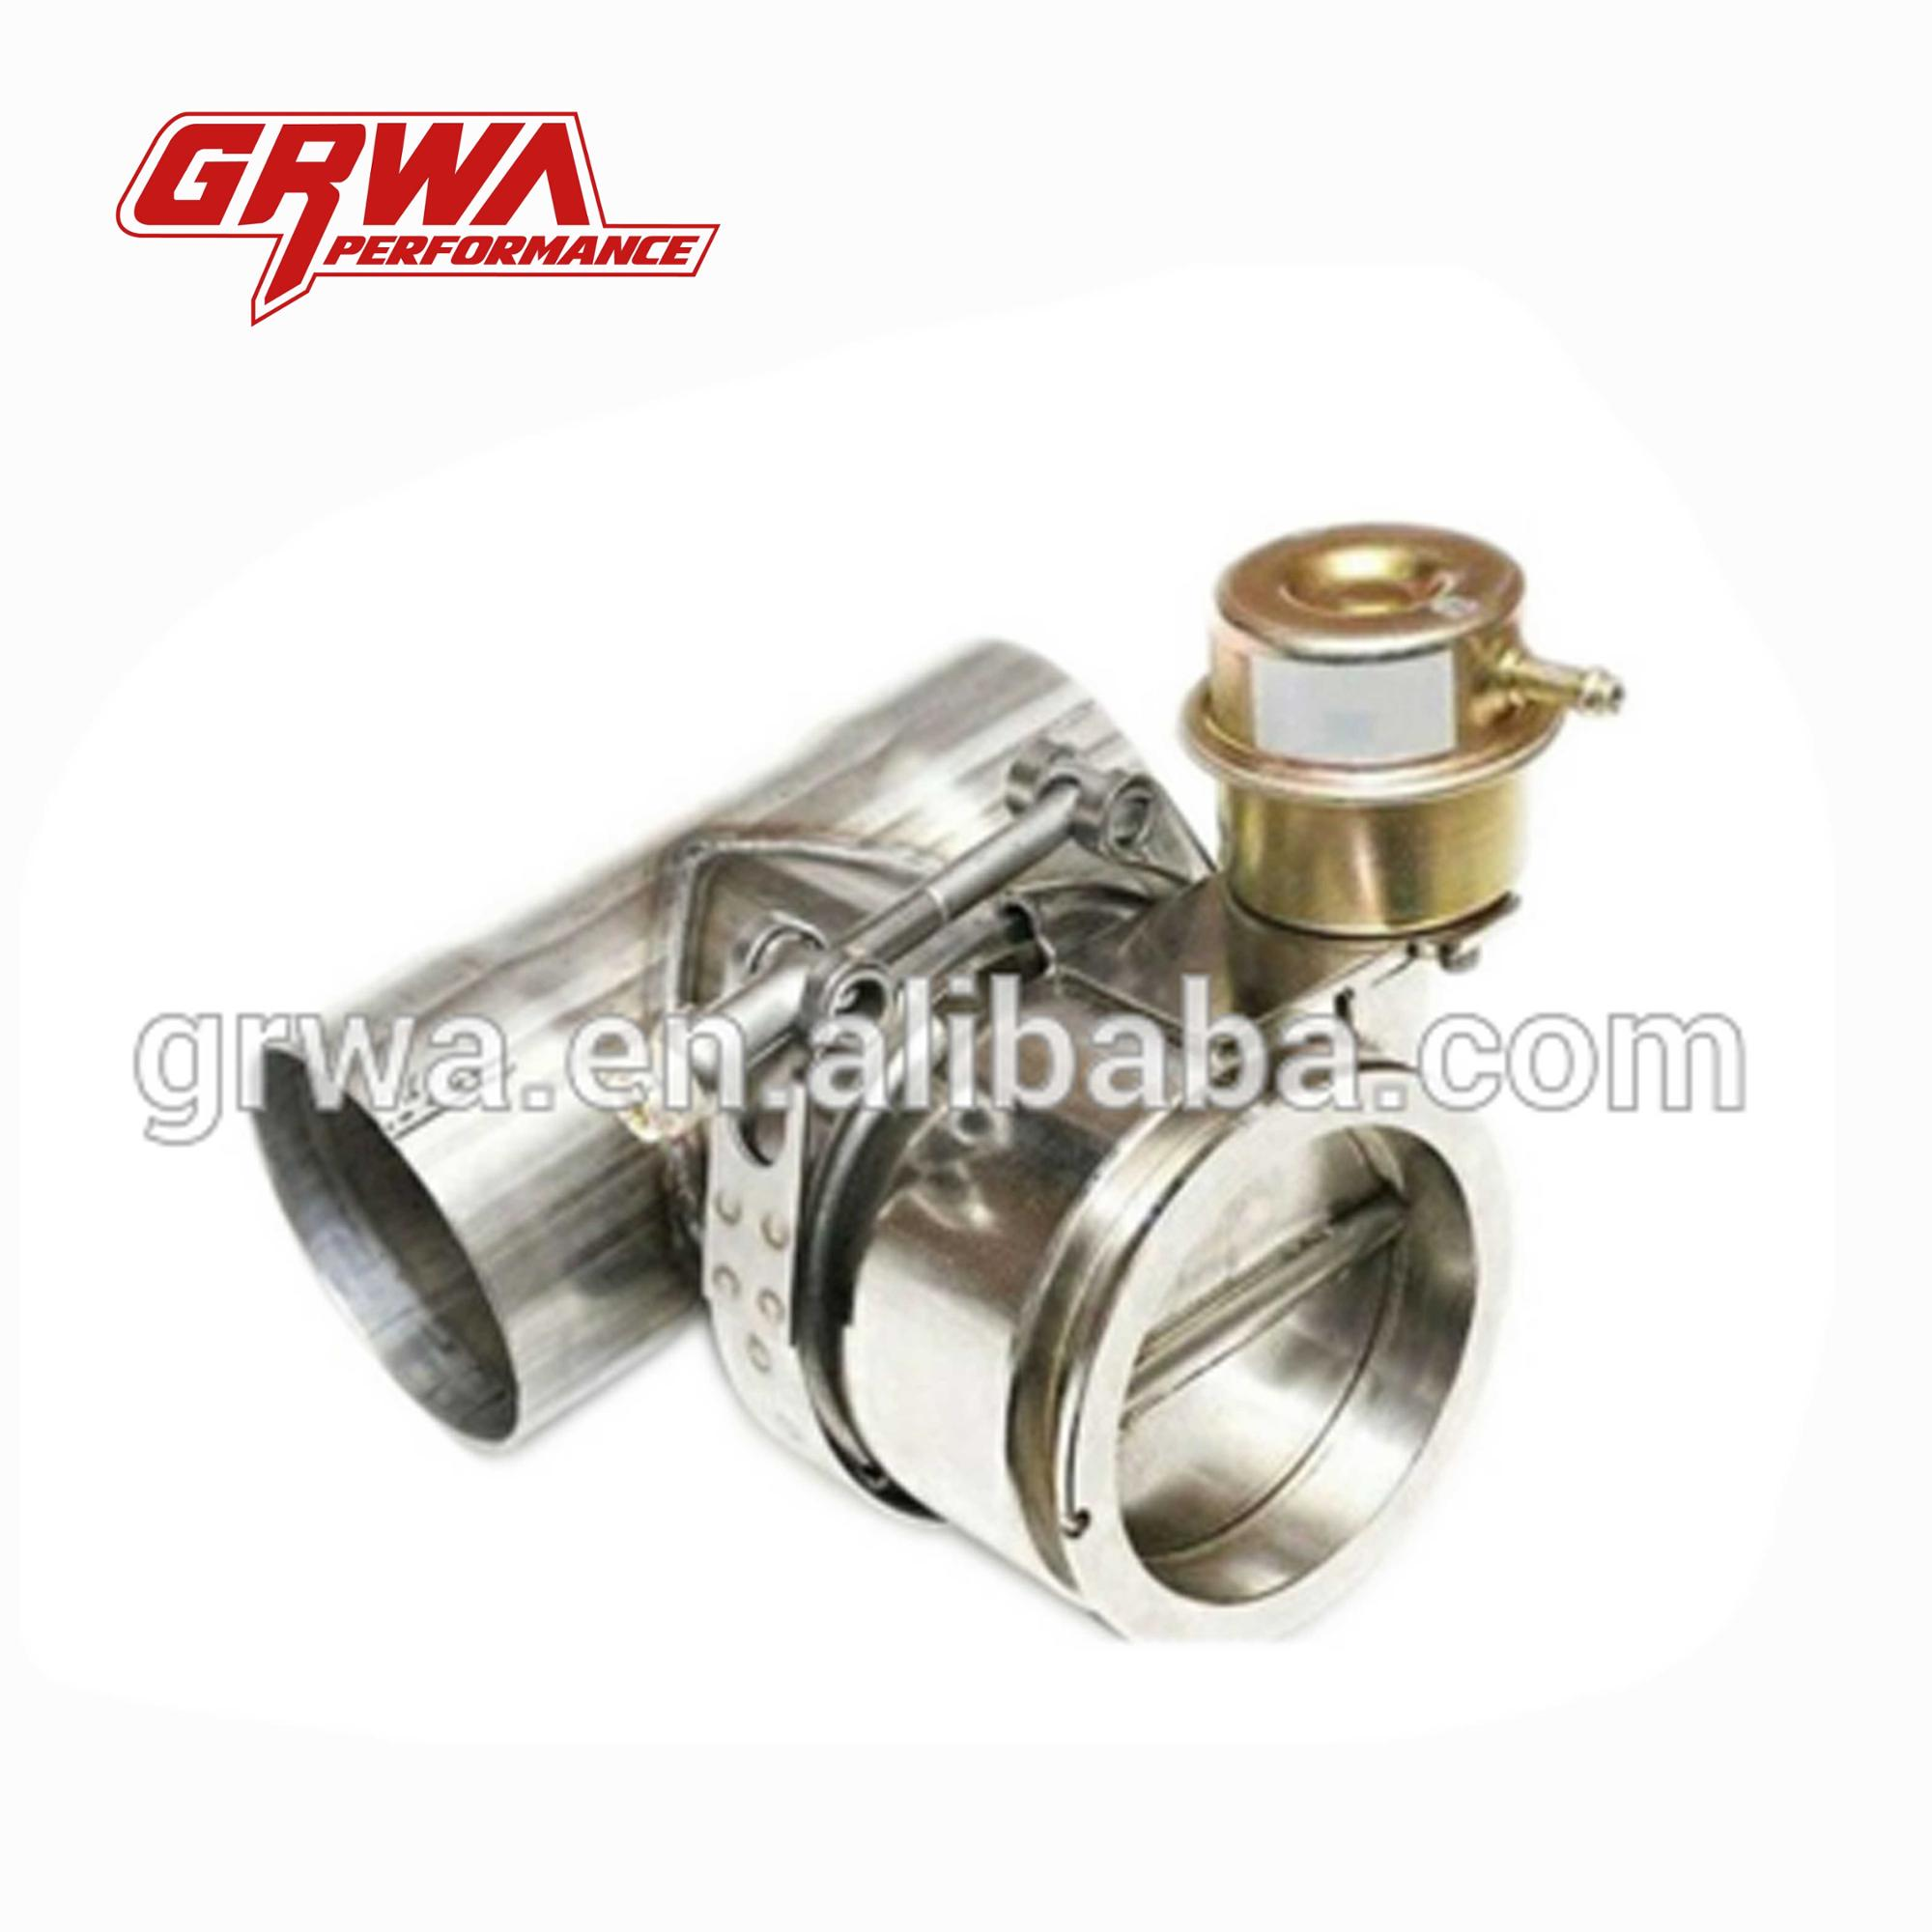 GRWA Stainless Steel Exhaust Valve Vacuum Cutout